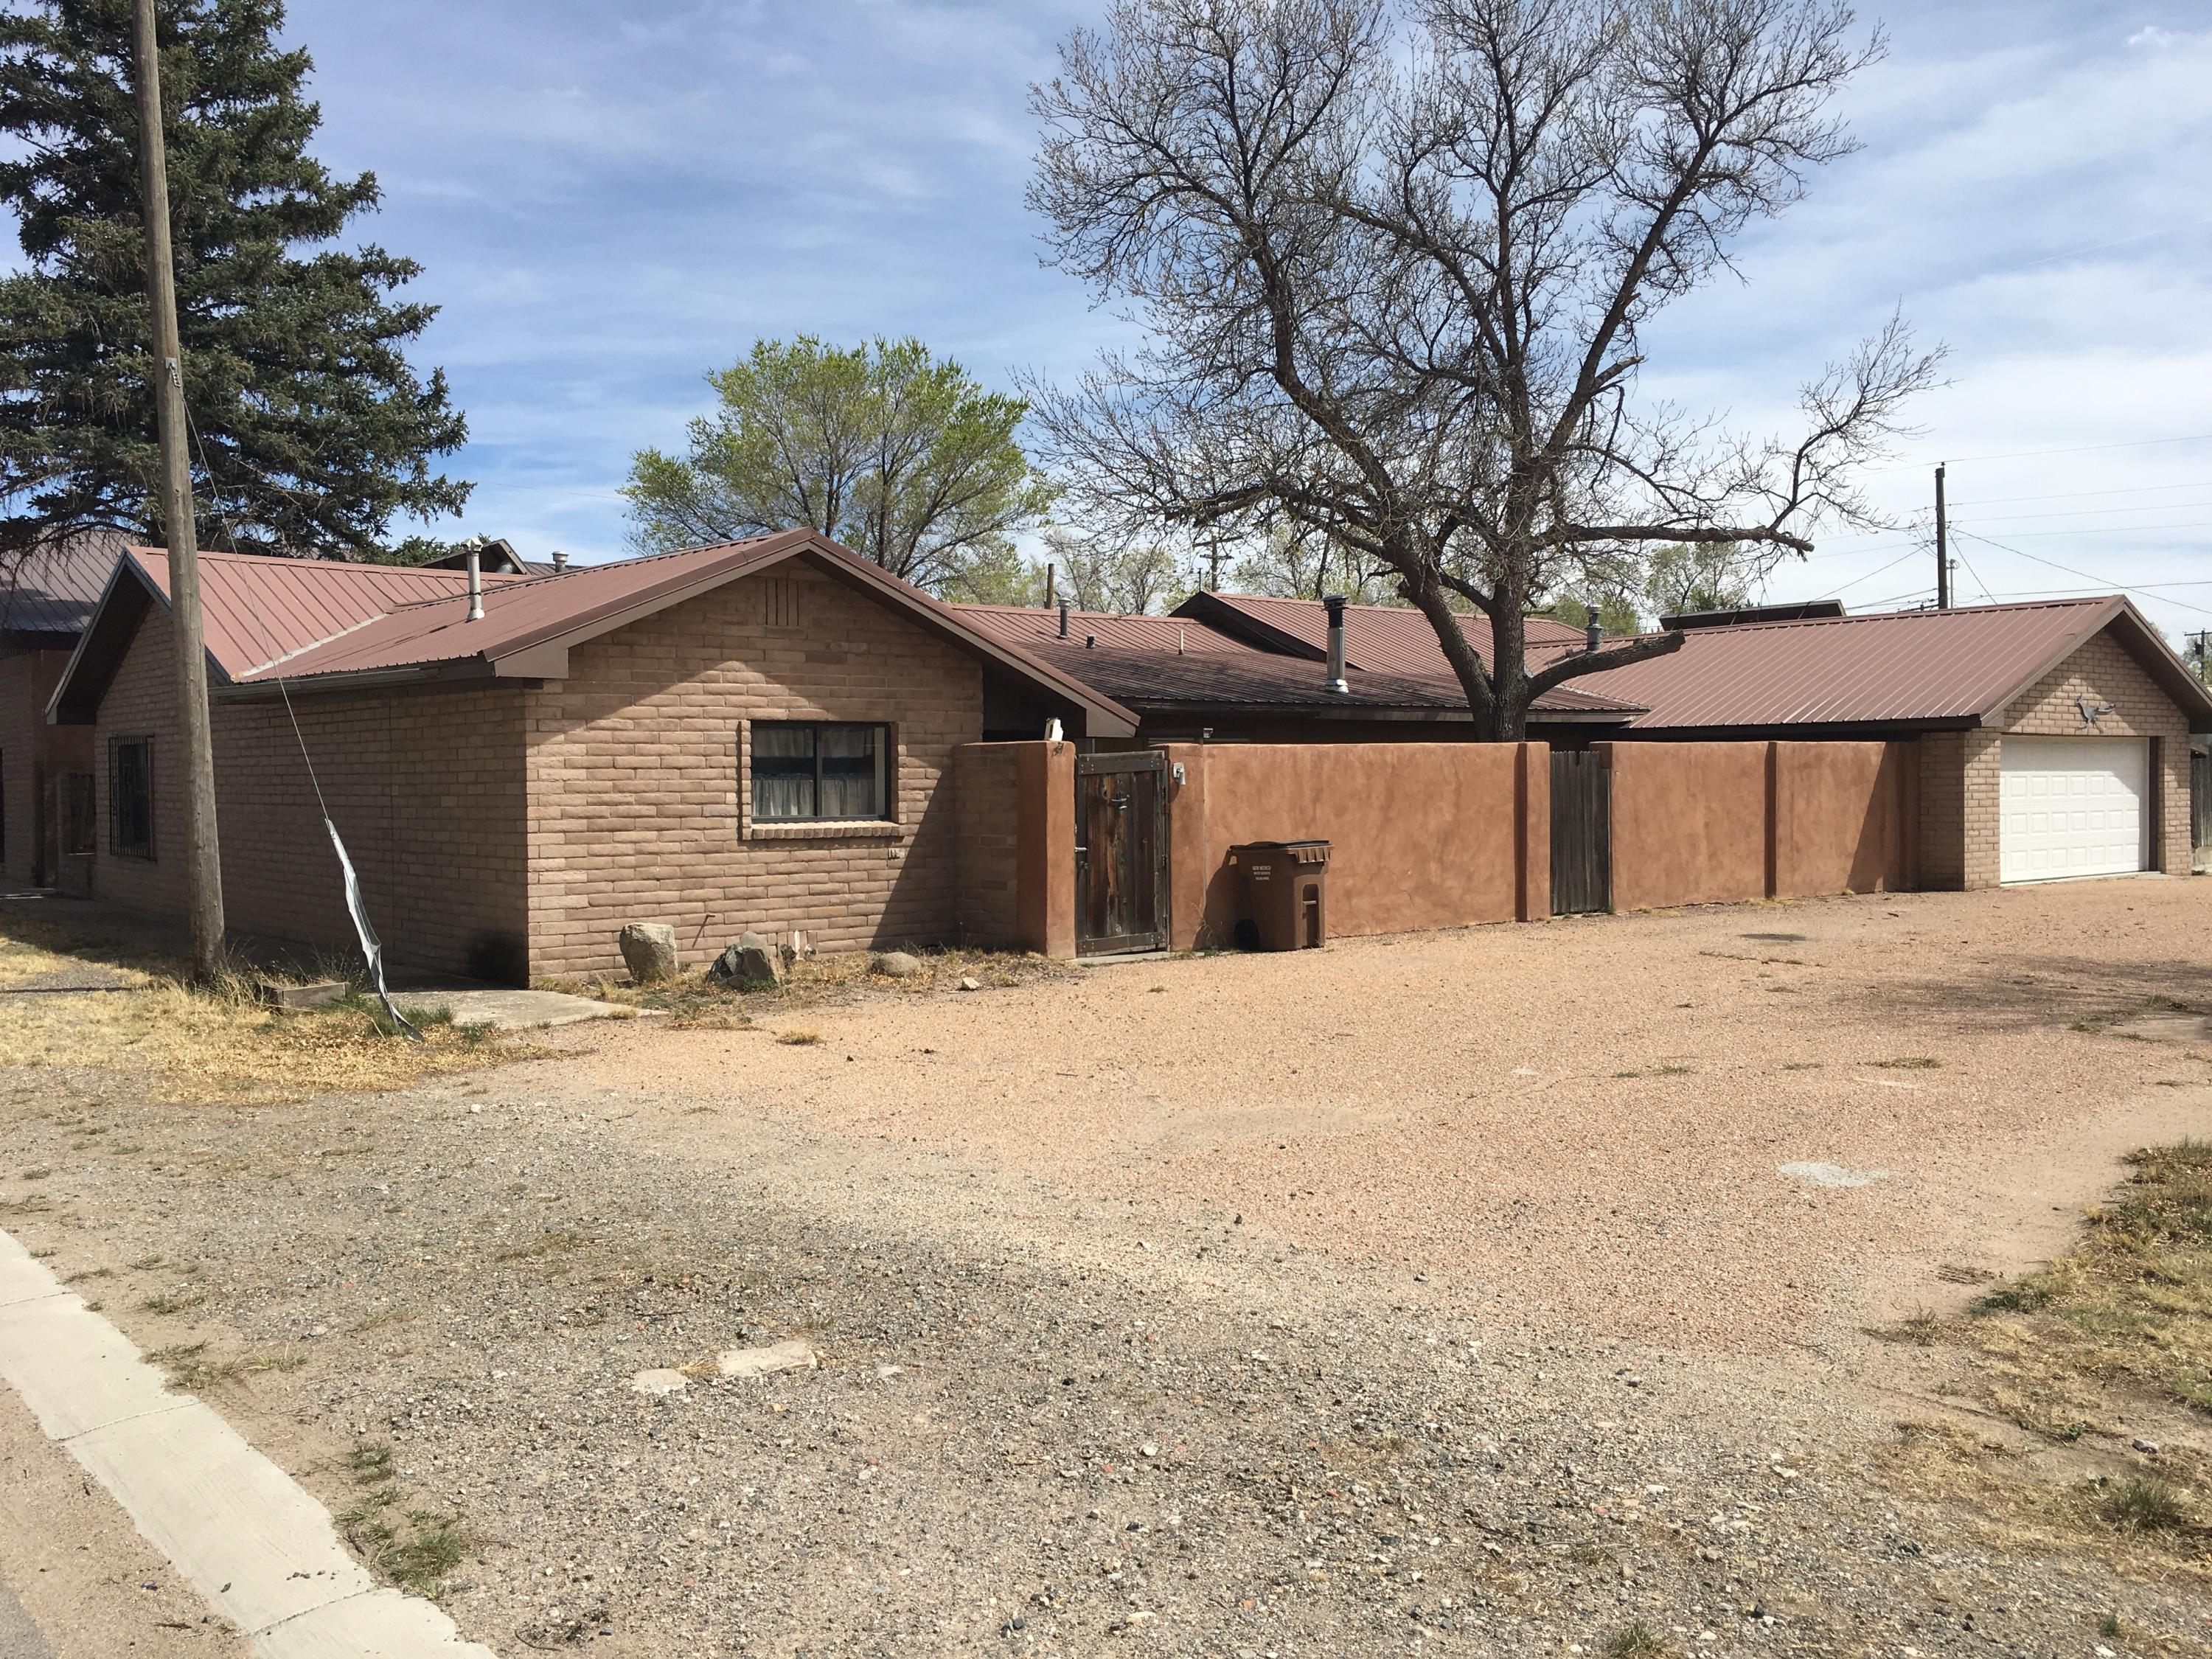 For Sale home in town of Estancia NM Torrance County. Centrally located with an hour drive to Albuquerque. Just over an hour to Santa Fe. Easy access to Hwy 41, the I-40 corridor or Hwy 60. The home is located in town at 509 Arthur Estancia, NM 87016. Close to the Estancia Public Schools. The home is 3,600 sf with 3 bedrooms and 3 bathrooms. Just needs a little TLC & fixer upper skills & it would make a nice family home in the heart of Estancia New Mexico. There are several rooms to choose from for bedrooms, dining room, living room & family room. The attached garage serves for laundry, storage,  small workshop. The library, park, fire station, post office & Torrance County NM fair grounds are within walking distance. Come to Estancia for the small town rural lifestyle.